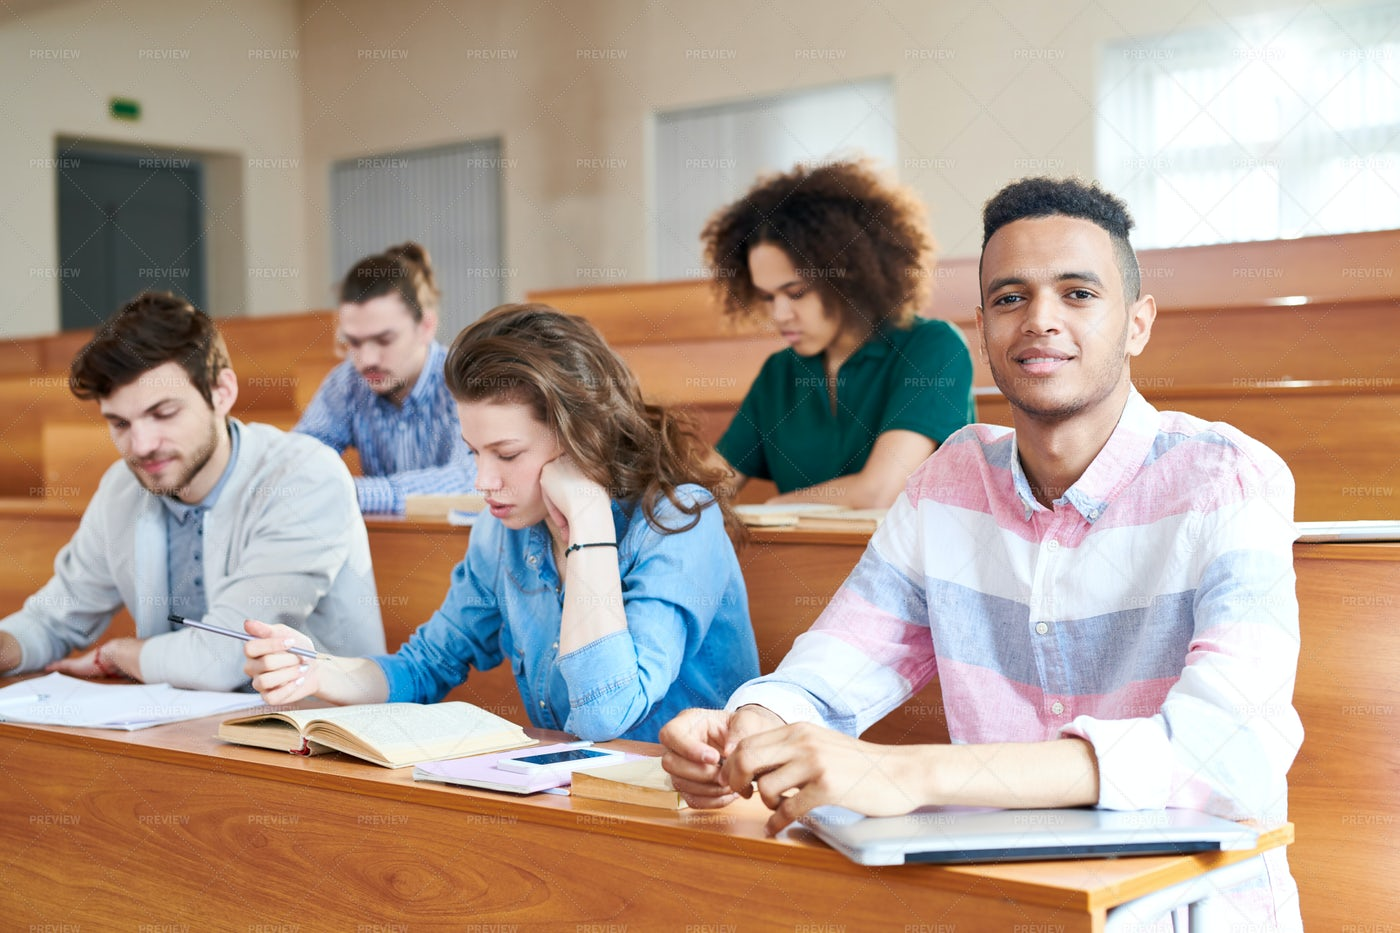 Students At Desk: Stock Photos